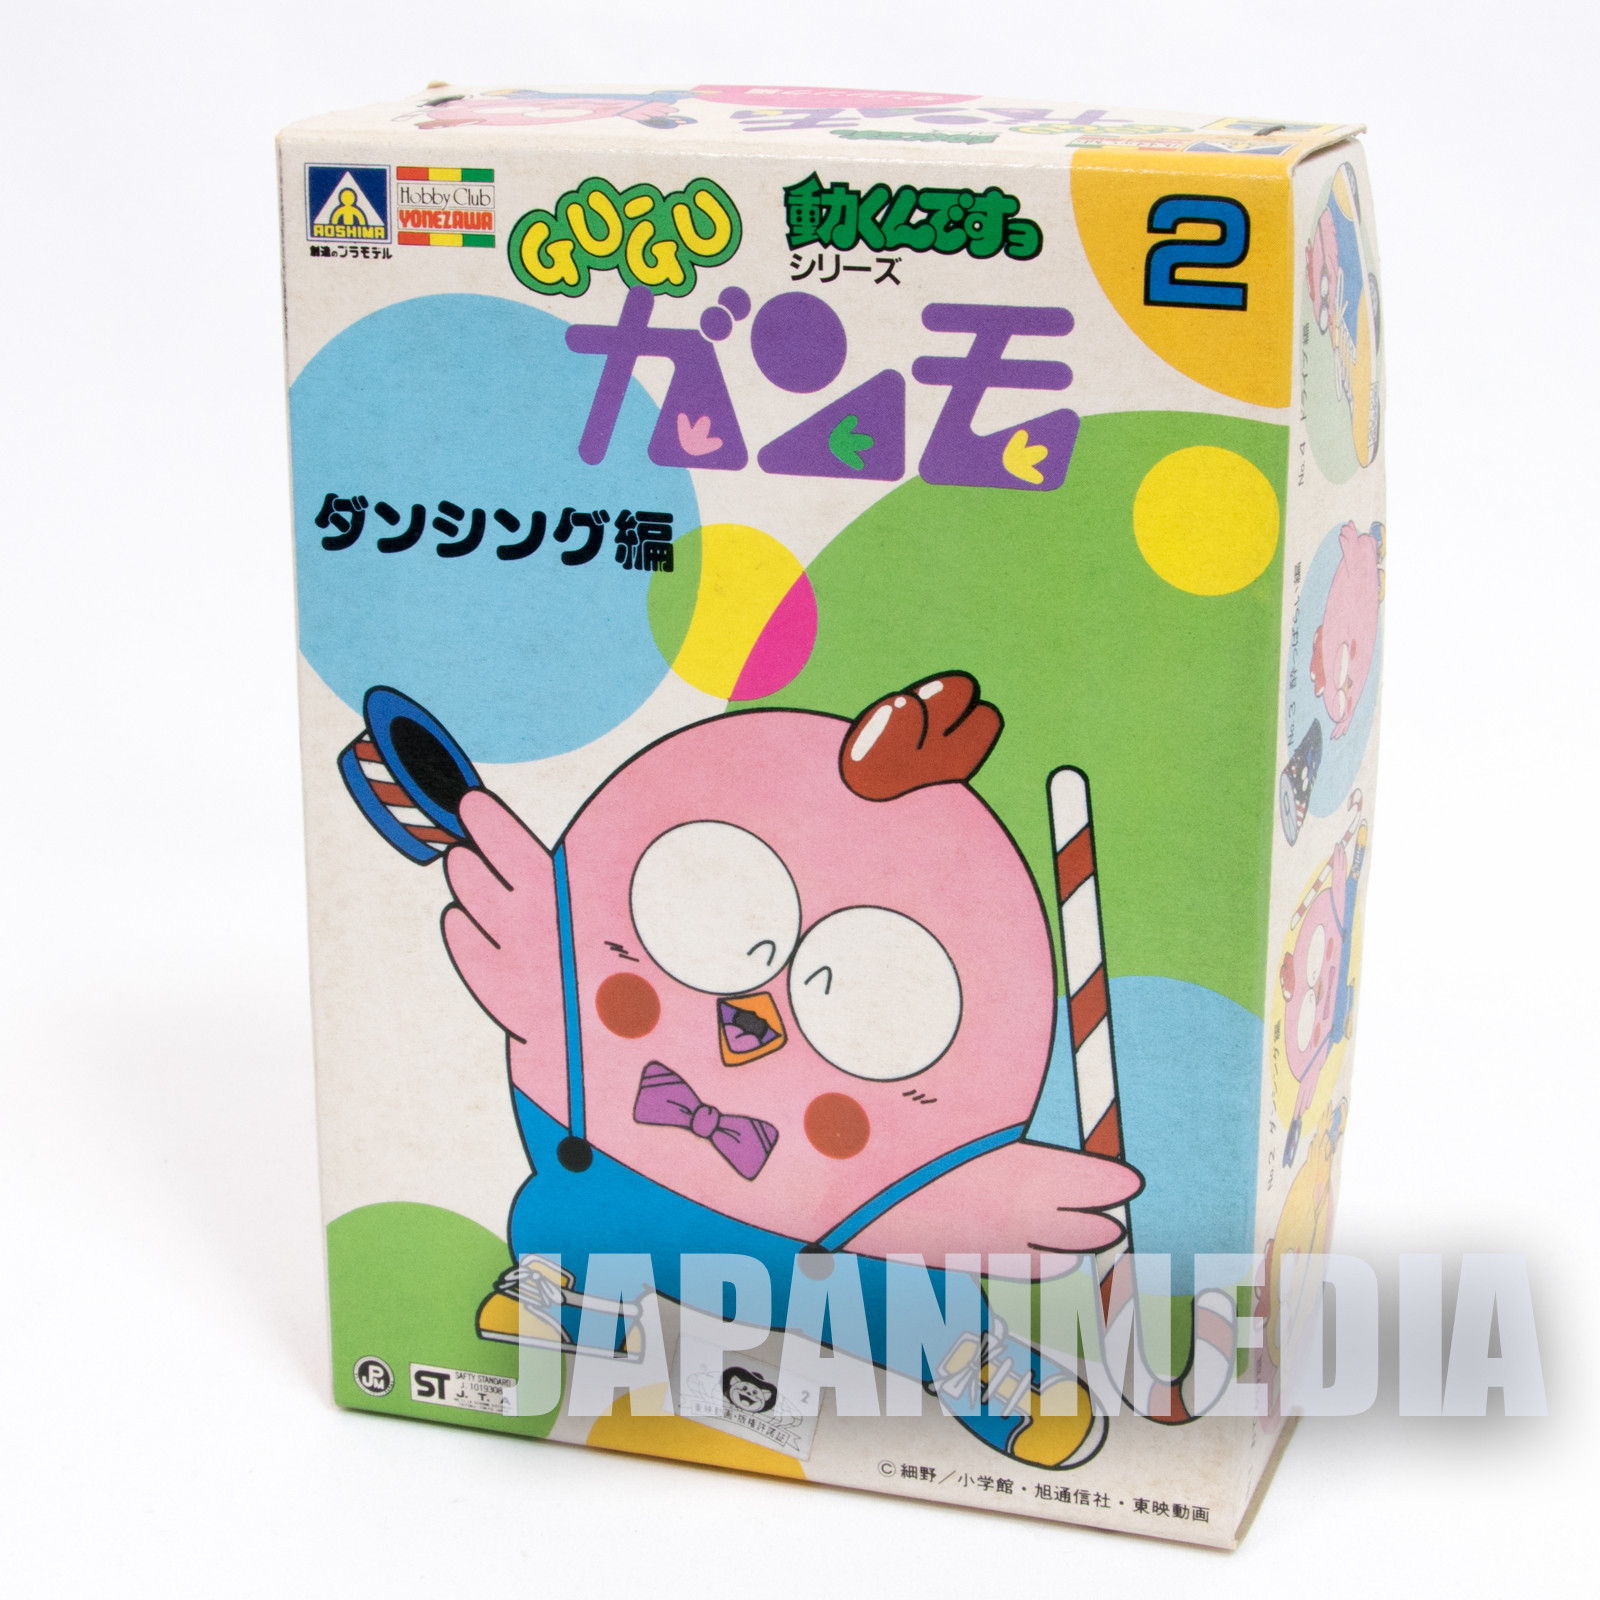 Gu Gu Ganmo Gummo Plastic Model Kit #2 JAPAN ANIME